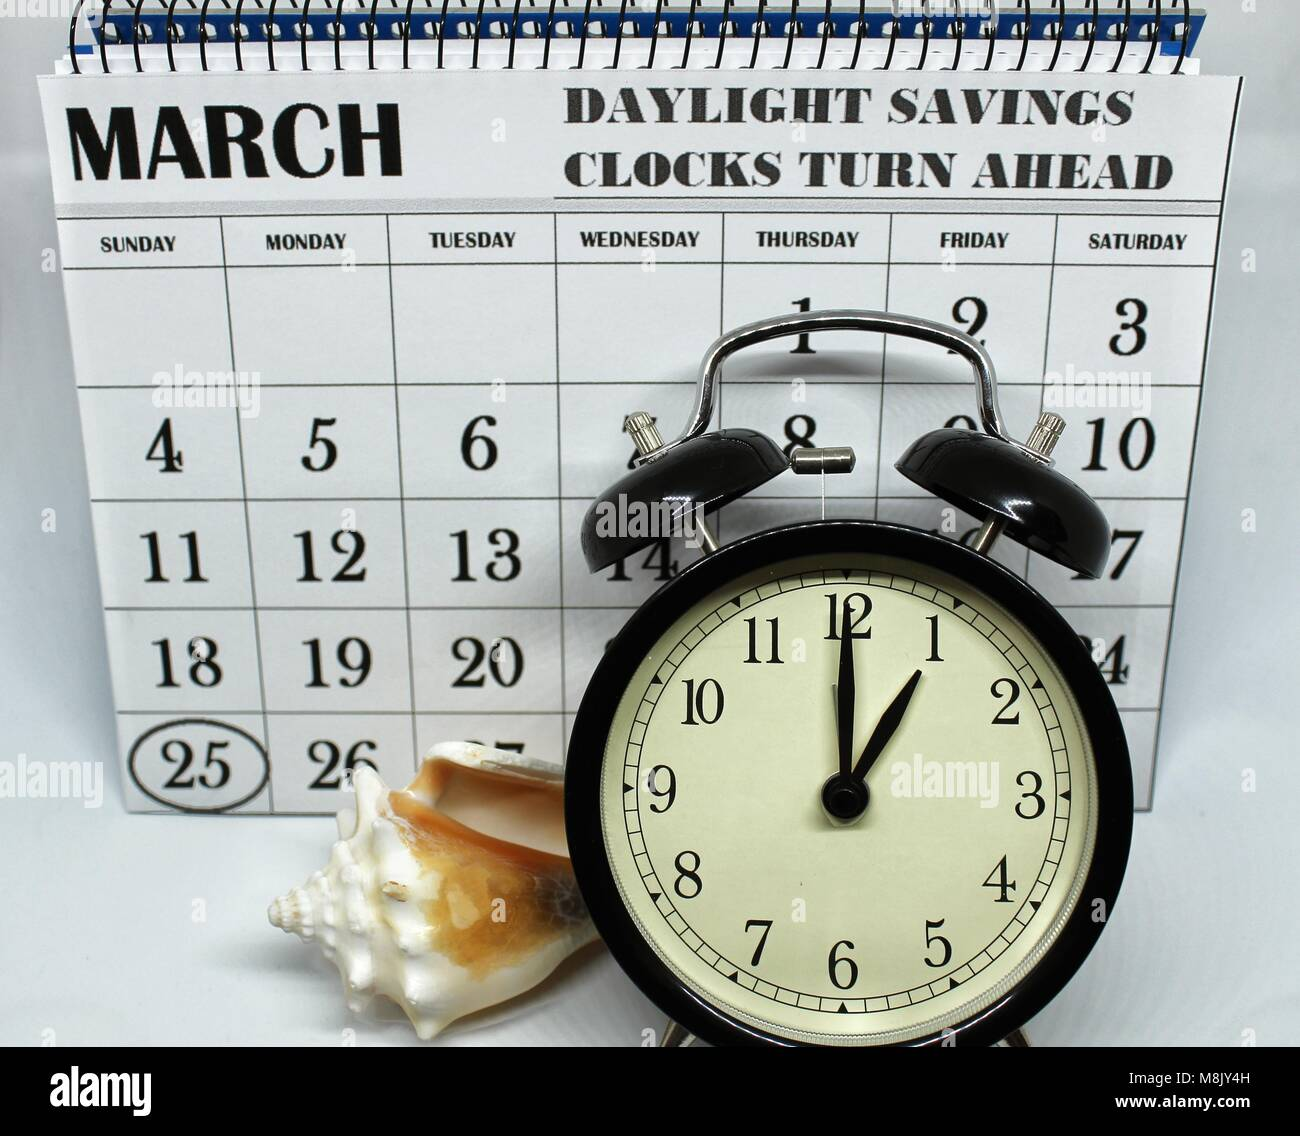 Daylight Savings Spring Forward sunday at 1:00 a.m. March 25 date indicated in the calendar. Clock next to a conch. - Stock Image